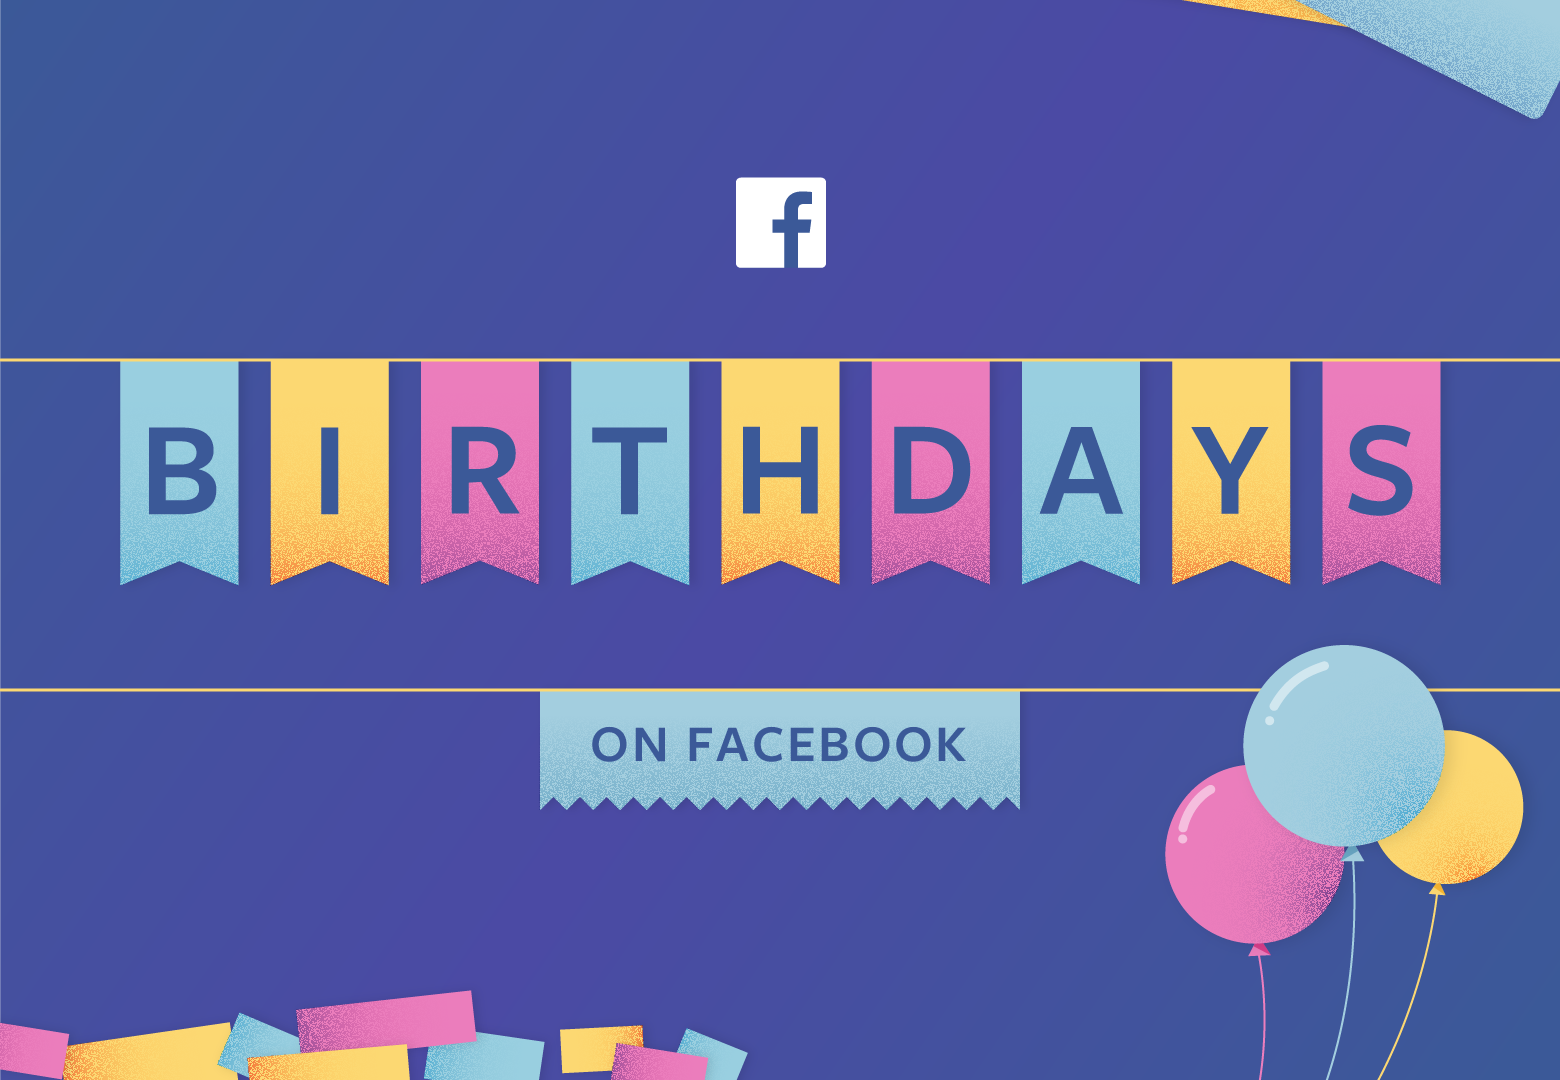 Celebrating A Birthday Now You Can Make It Even More Meaningful About Facebook